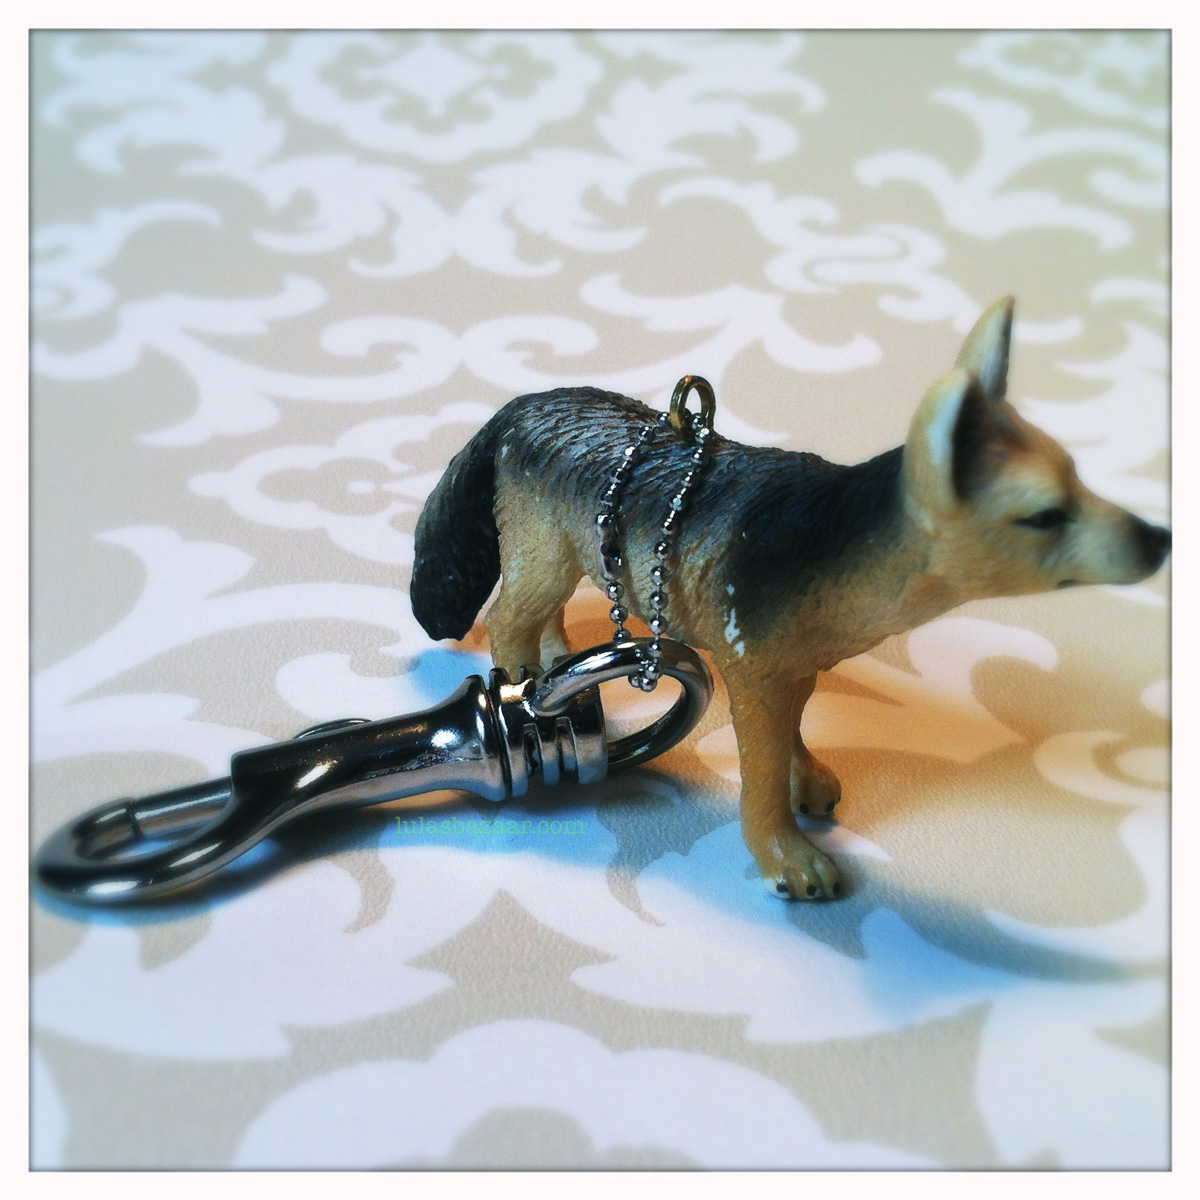 German Shepard toy key ring